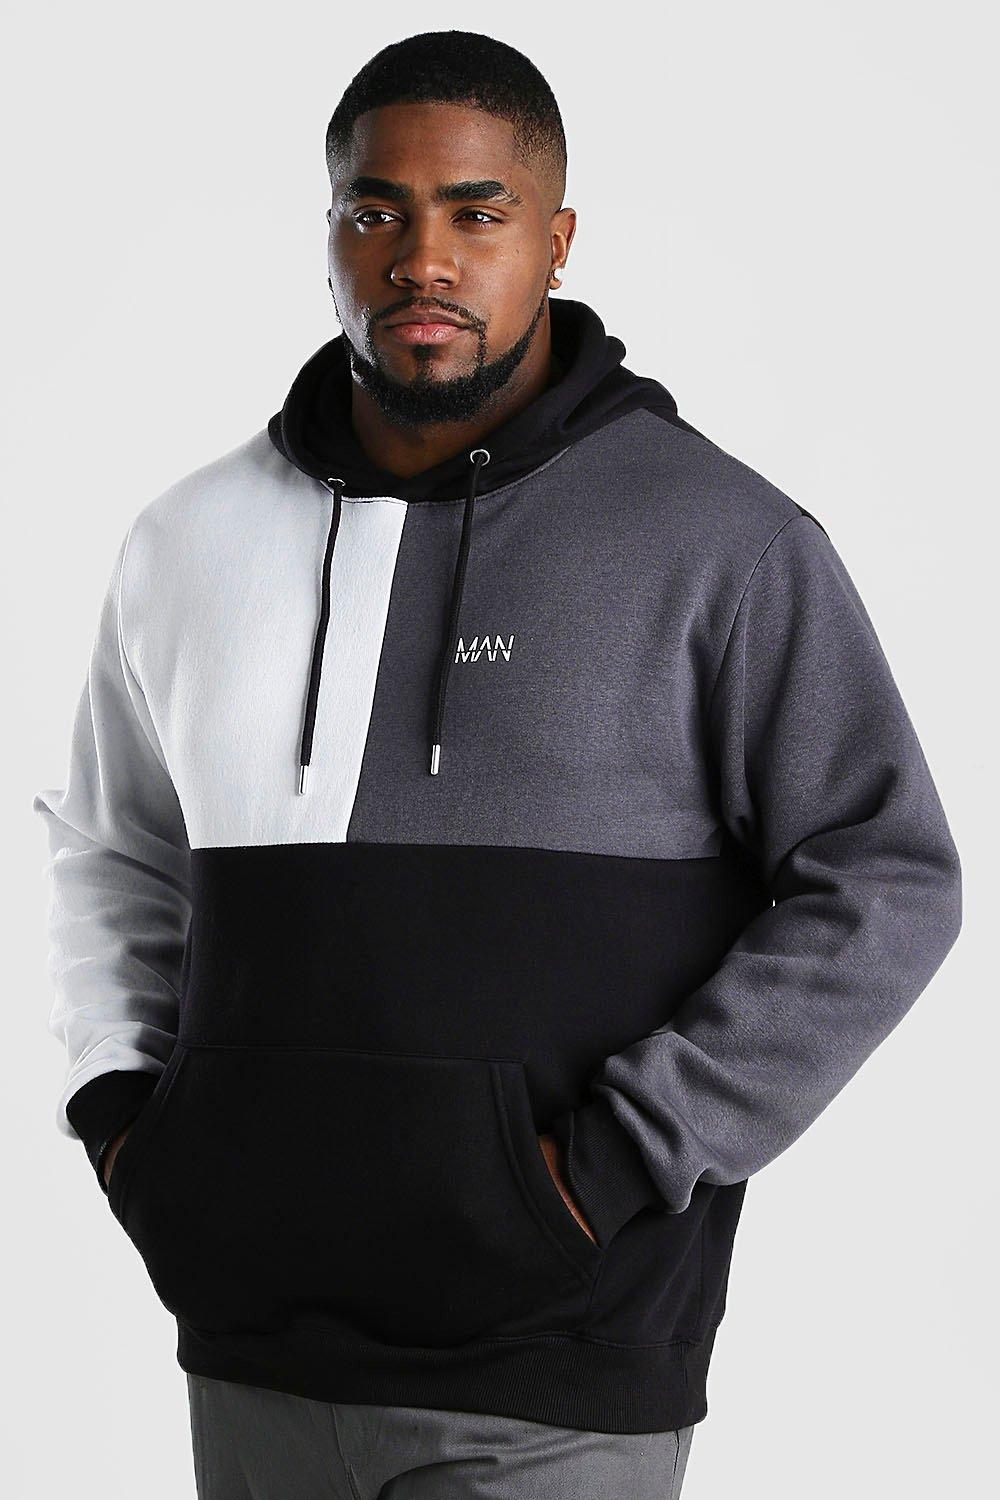 Big & Tall Hoodies | BadRhino